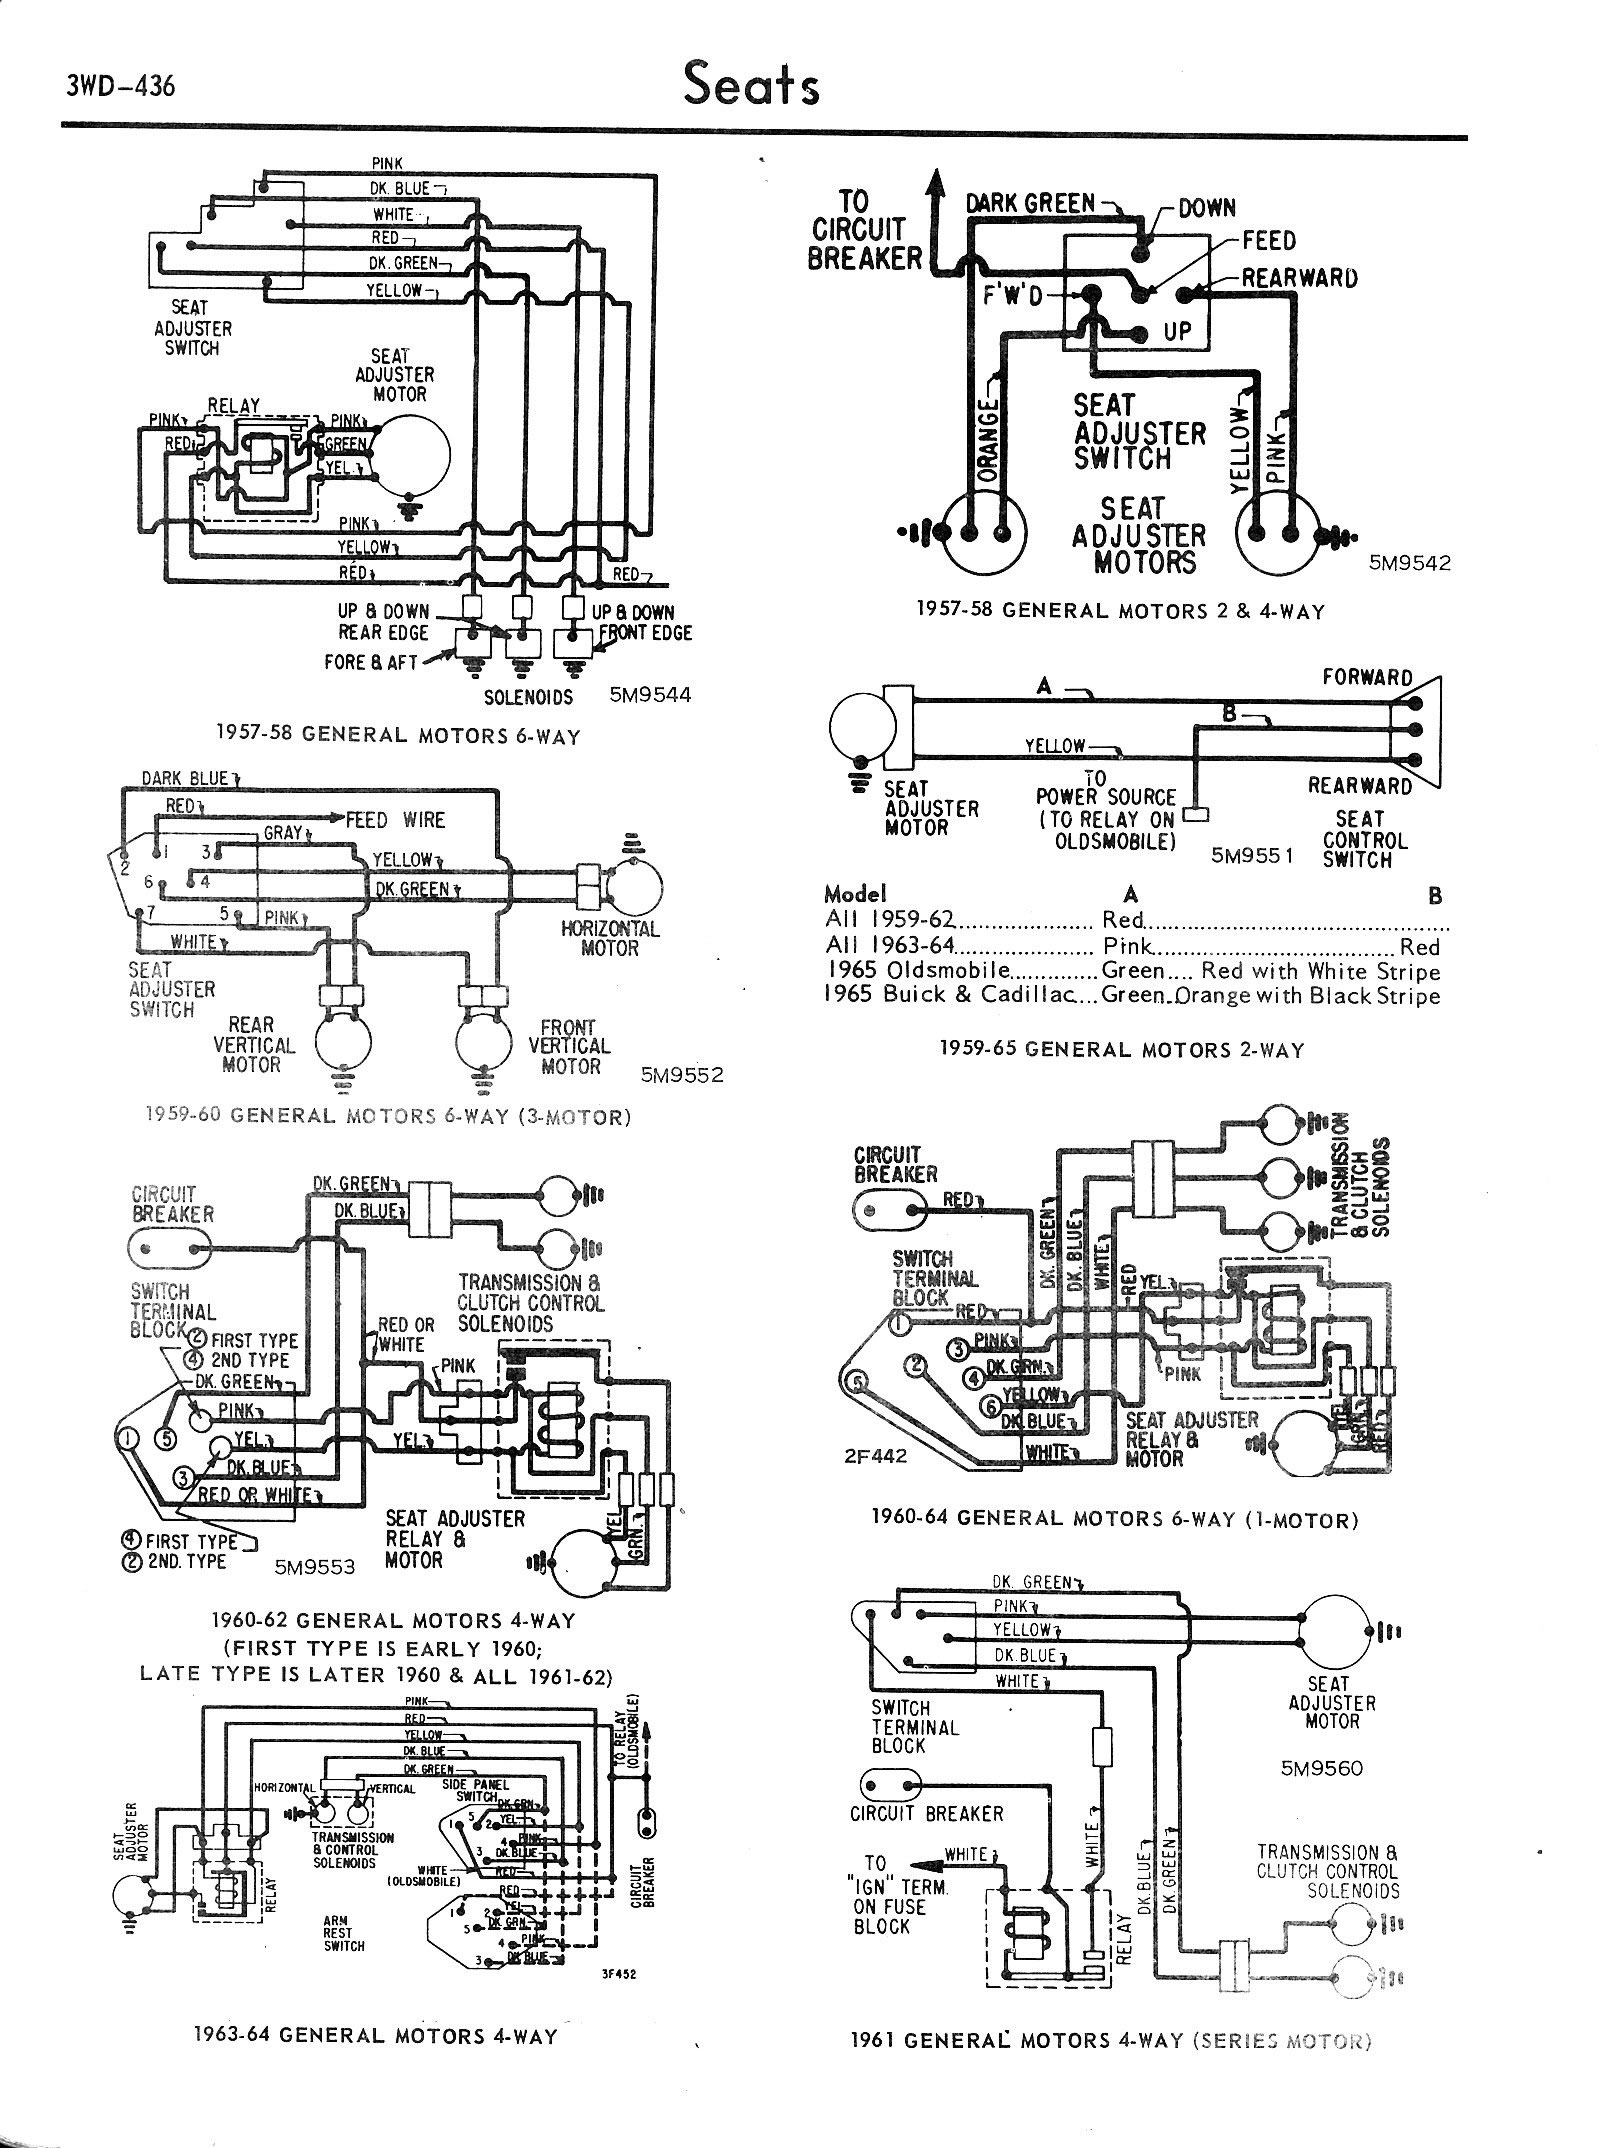 Chevy Diagrams 57 Wiper Motor Wiring Diagram C 64 Gm A Mix Of 2 Way 4 6